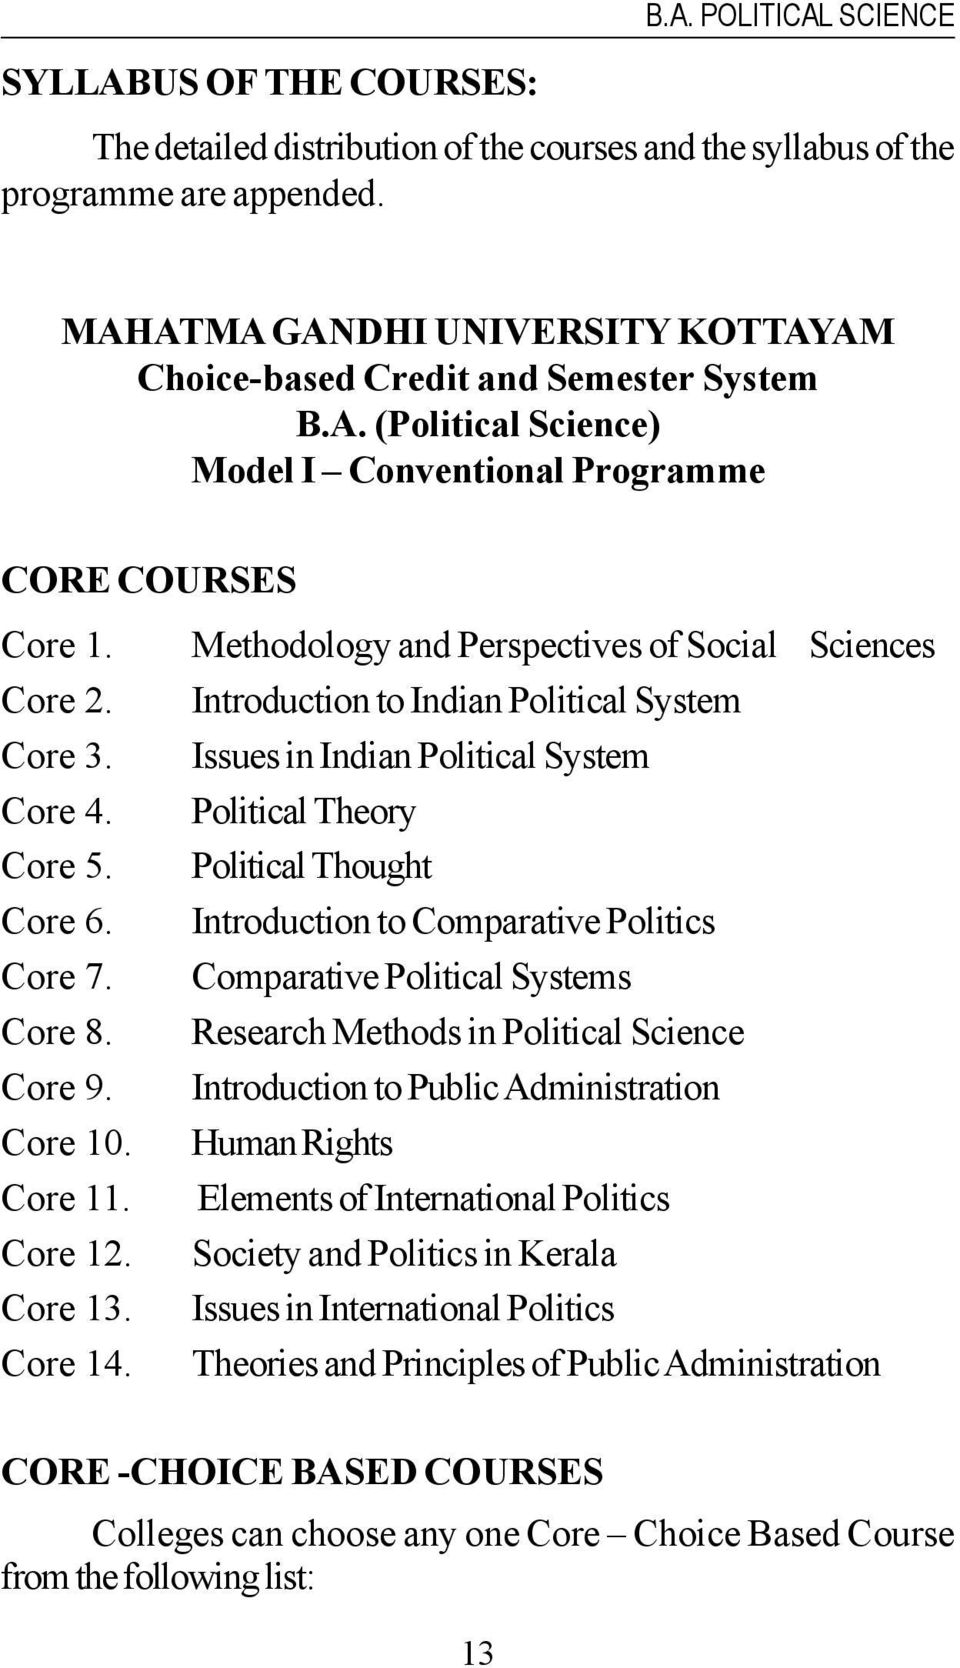 Global Regents Thematic Essay On Political Systems The Following Pages You Will Find